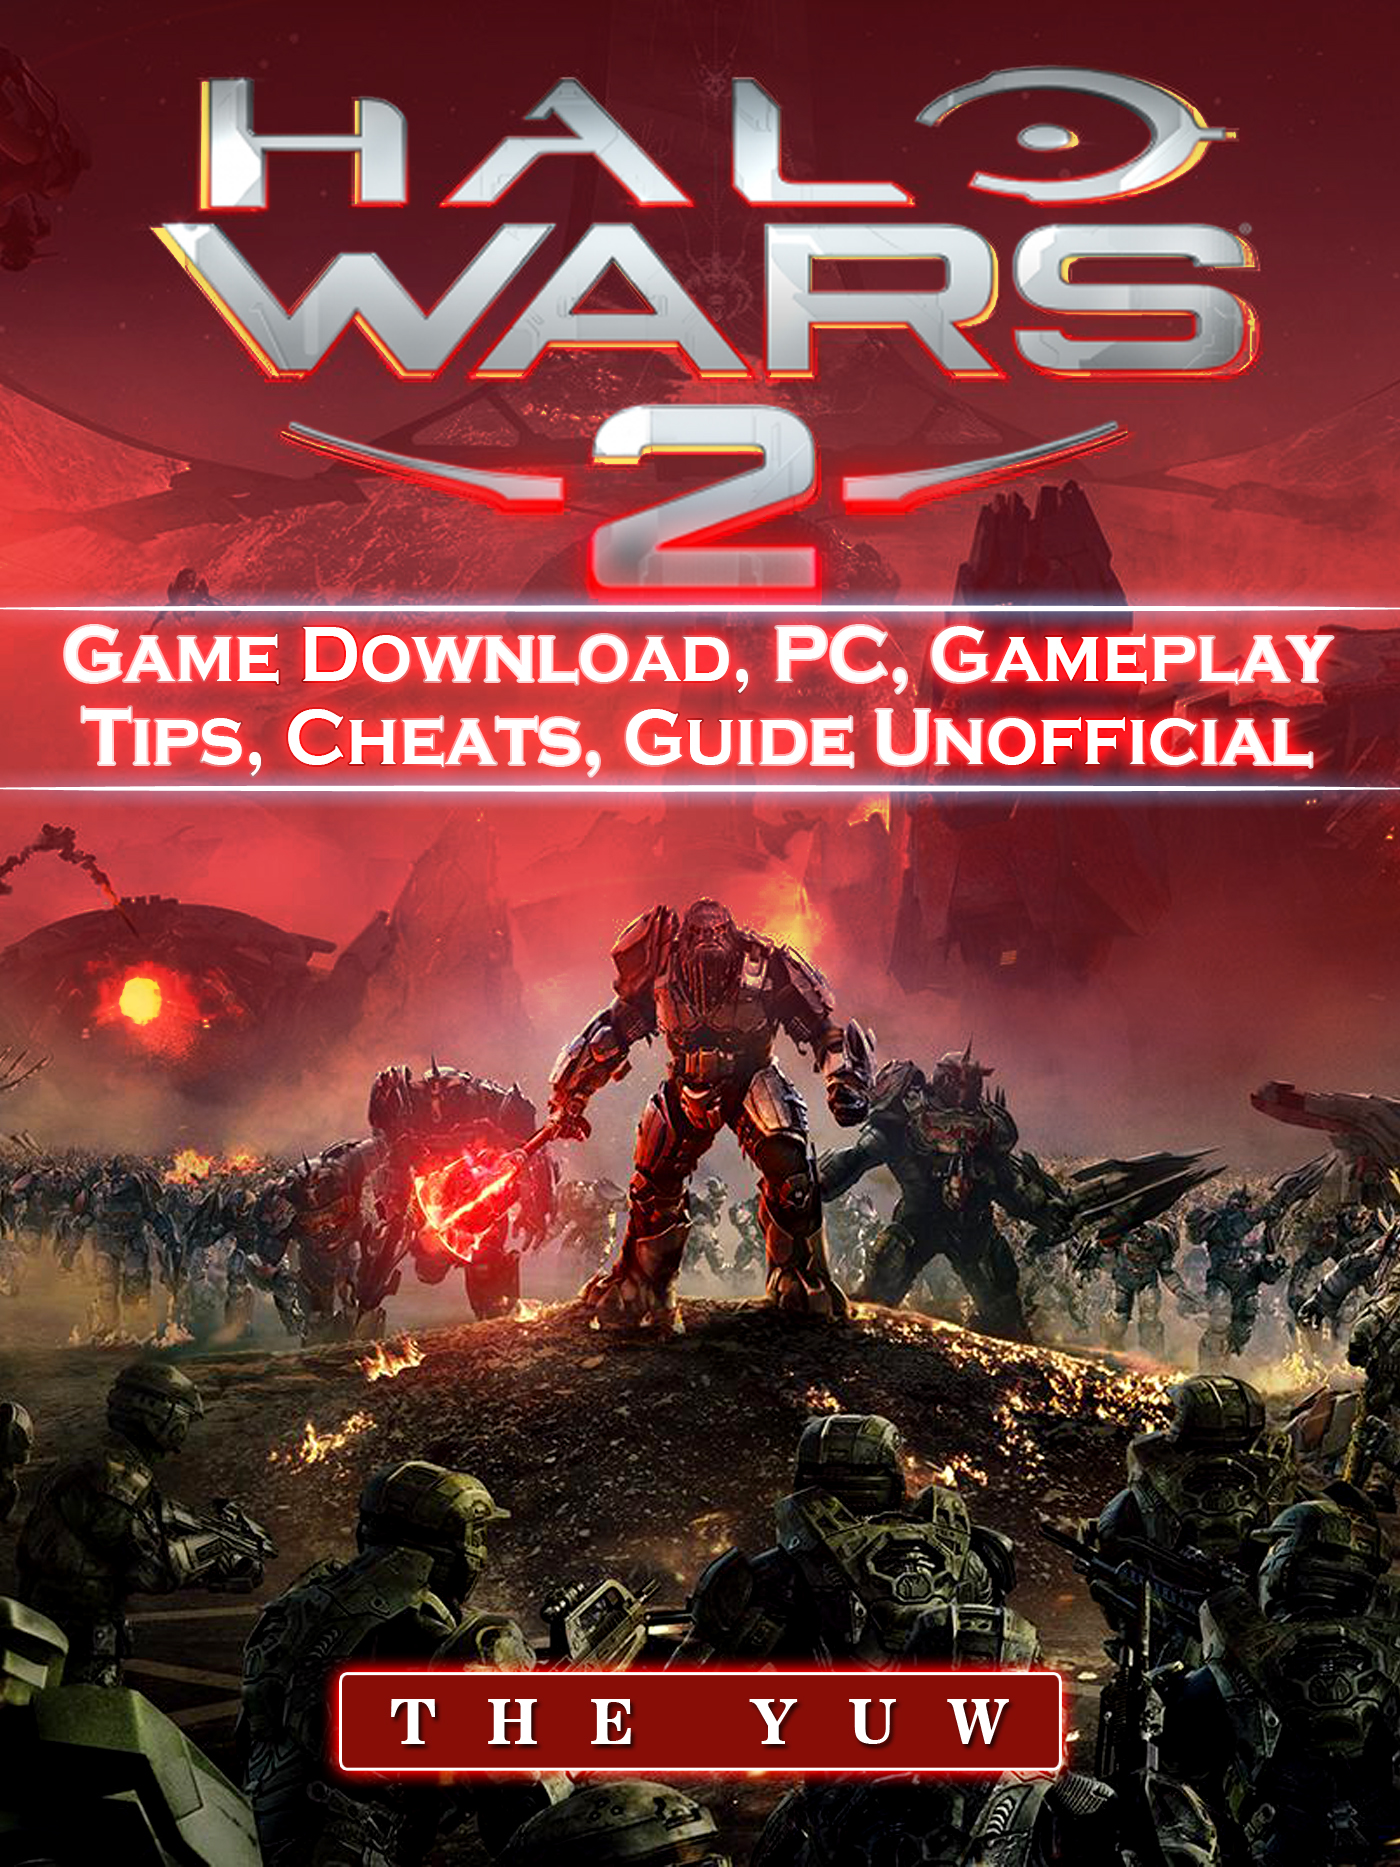 Halo Wars 2 Game Download PC Gameplay Tips Cheats Guide Unofficial